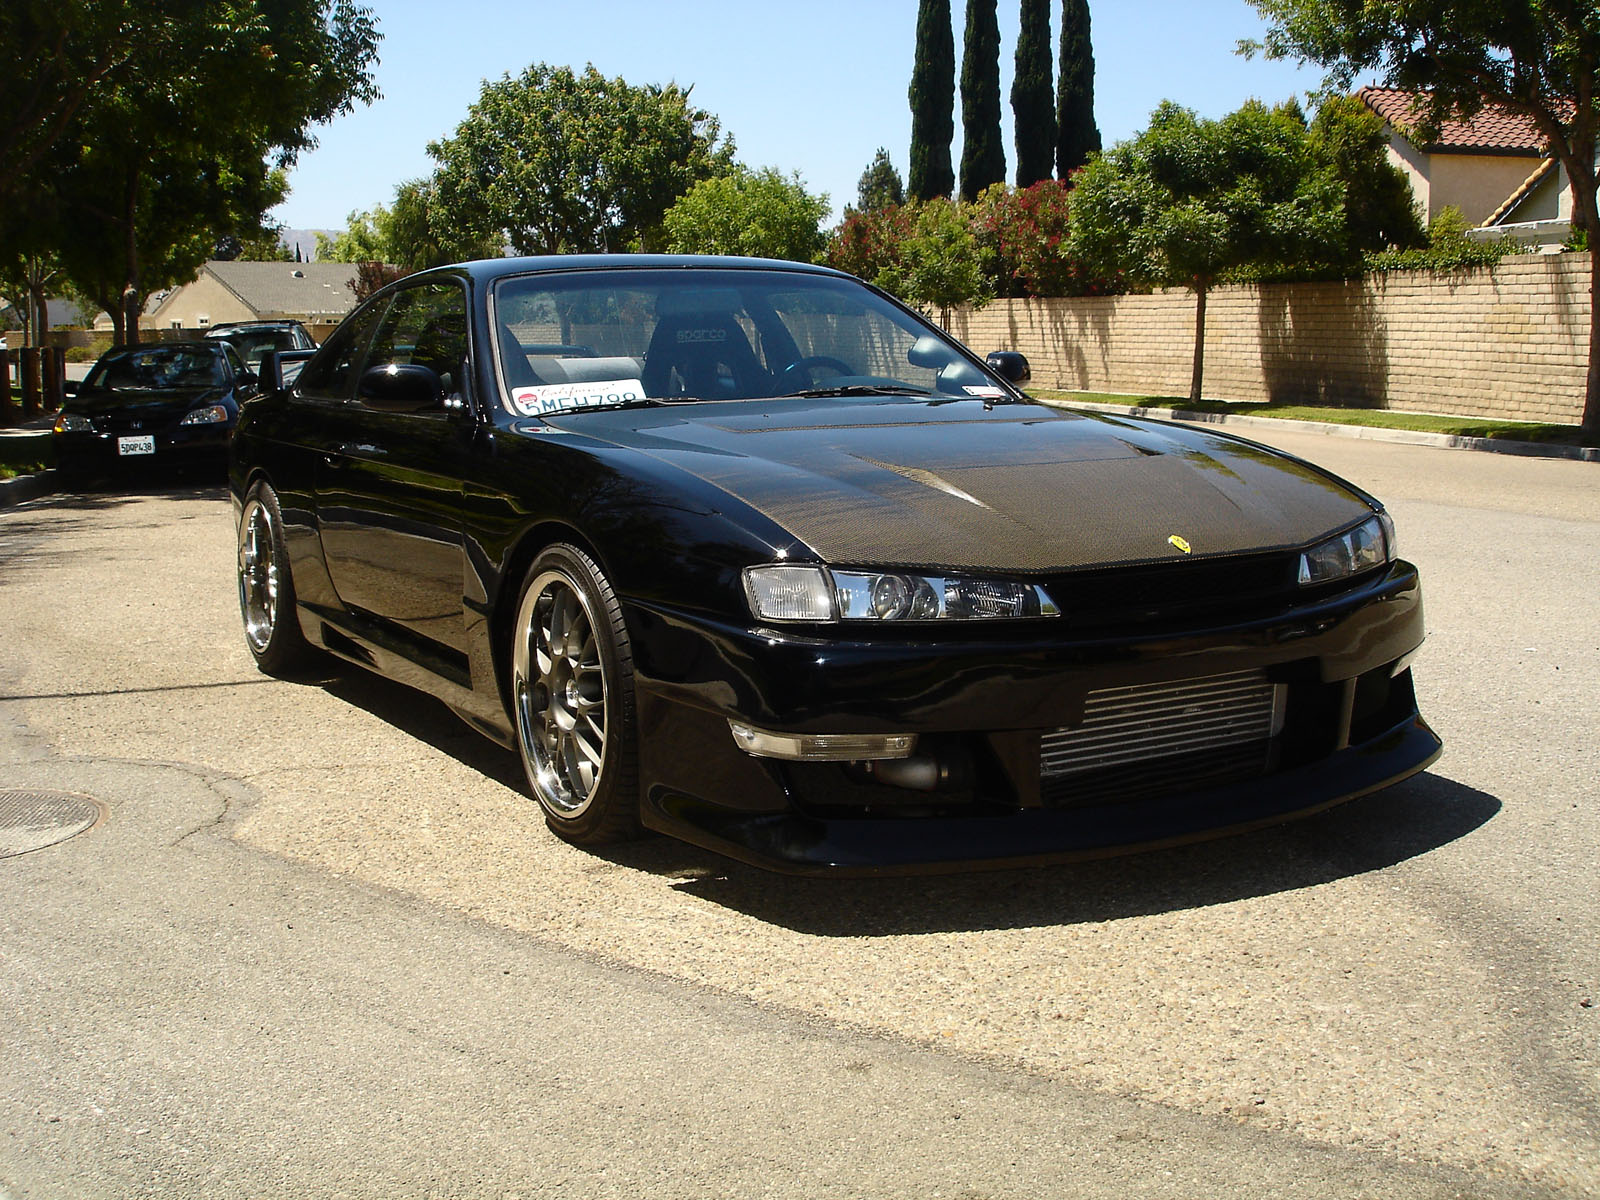 1998 Nissan S14 Silvia 240sx S14 For Sale Simi Valley